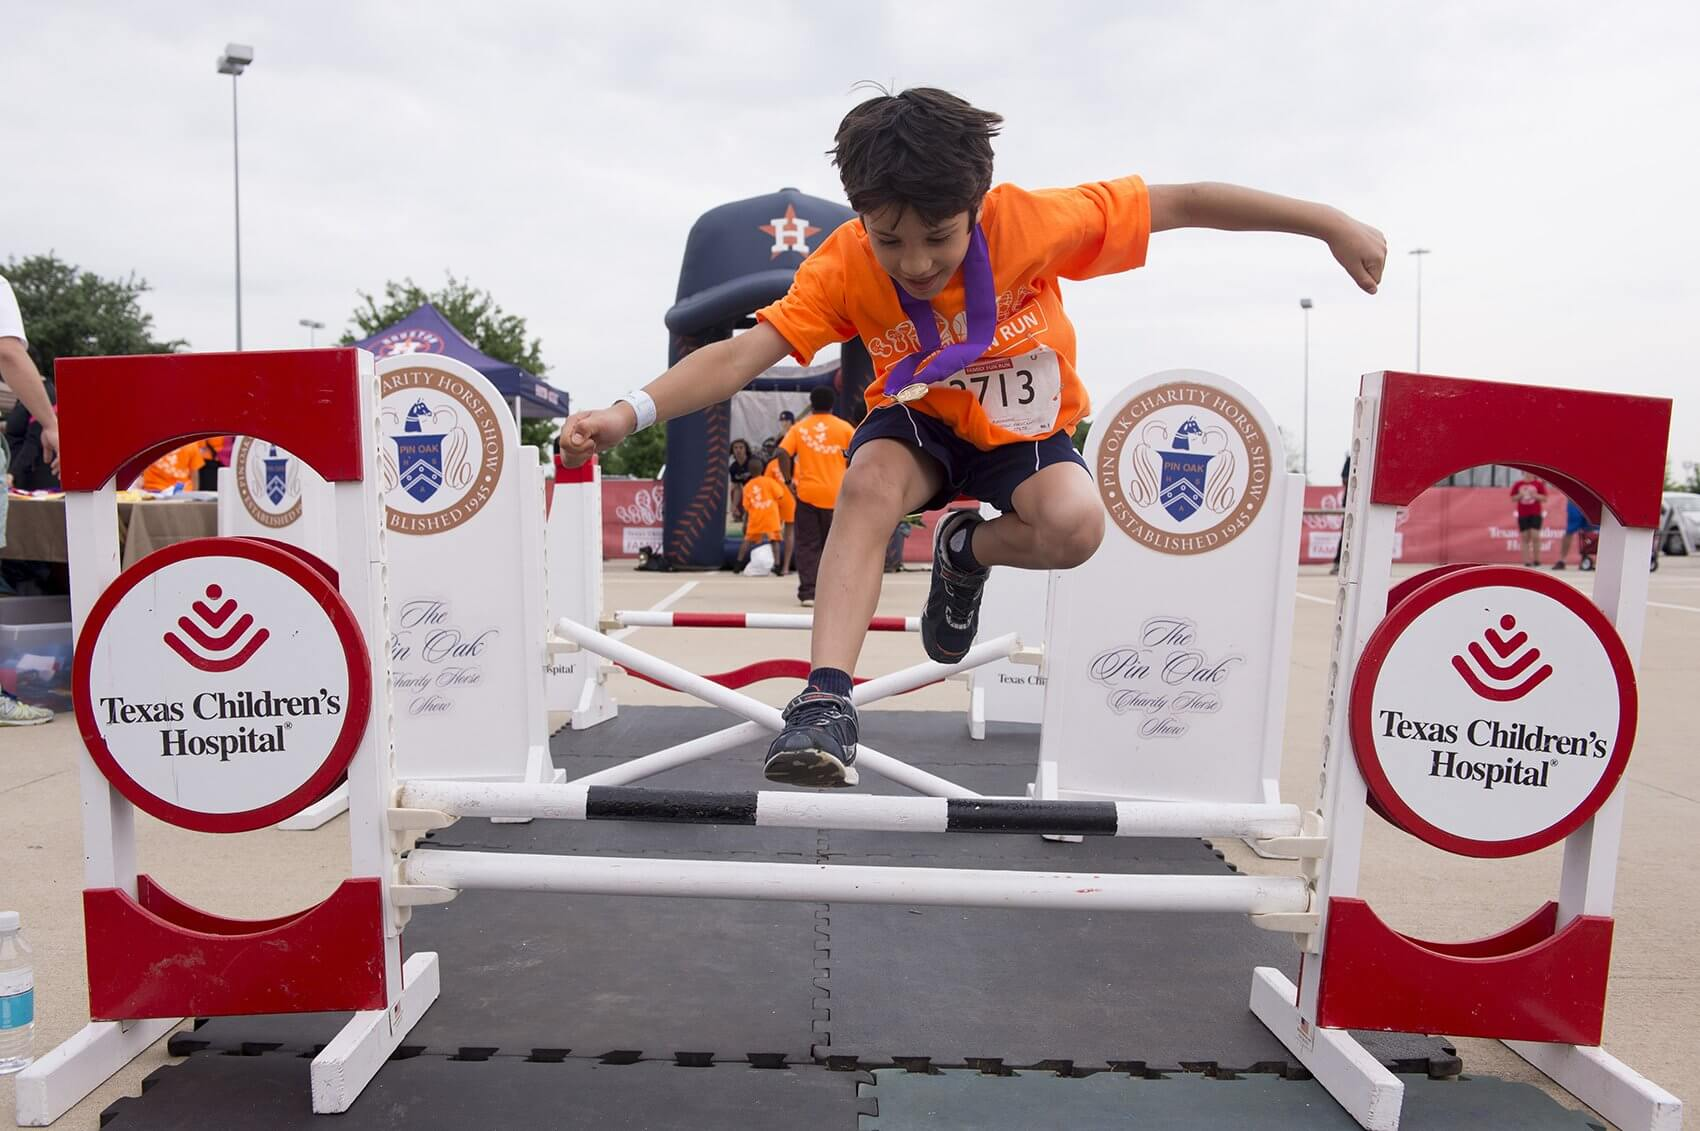 A participant jumps over the hurdles at Pin Oak Charity Horse Show's booth at the Family Fun Zone (Credit: Paul Vincent Kuntz/Texas Children's Hospital)